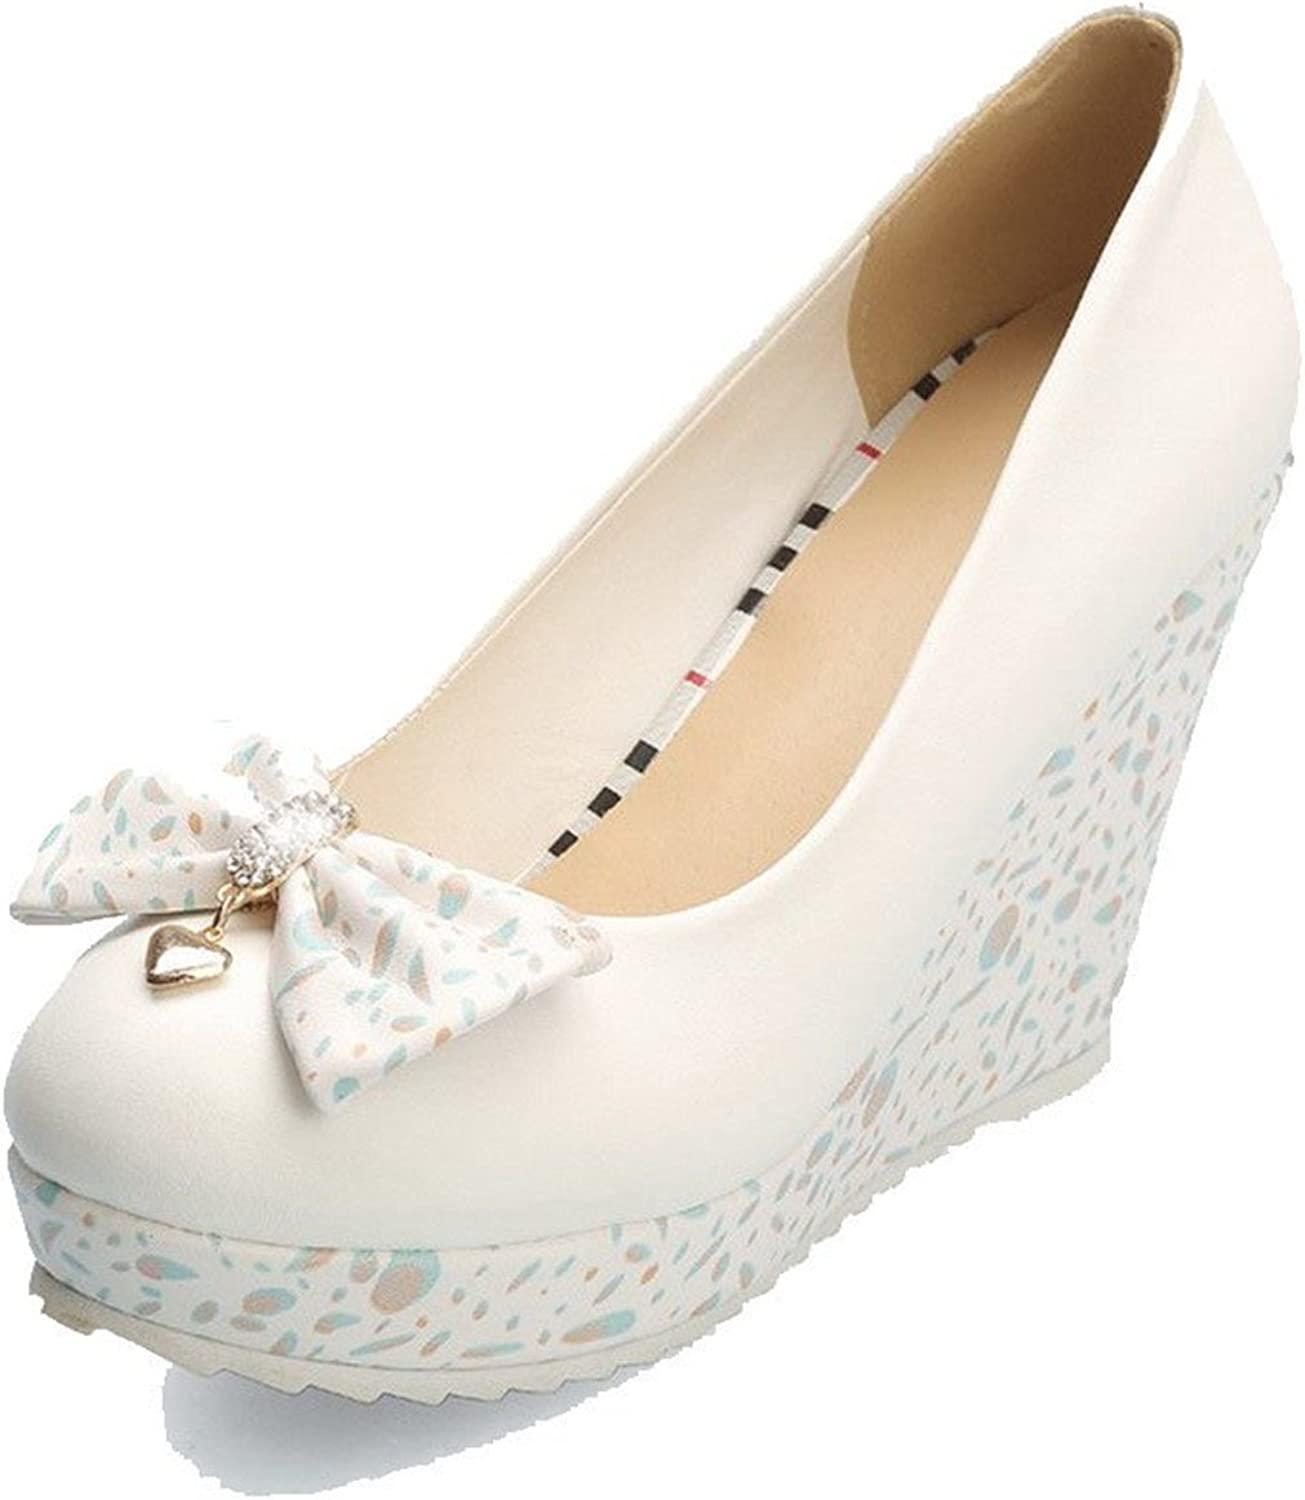 Jean Sche Sweat Women's Round Closed Toe High-Heels Soft Material Solid Pull-on Pumps-shoes